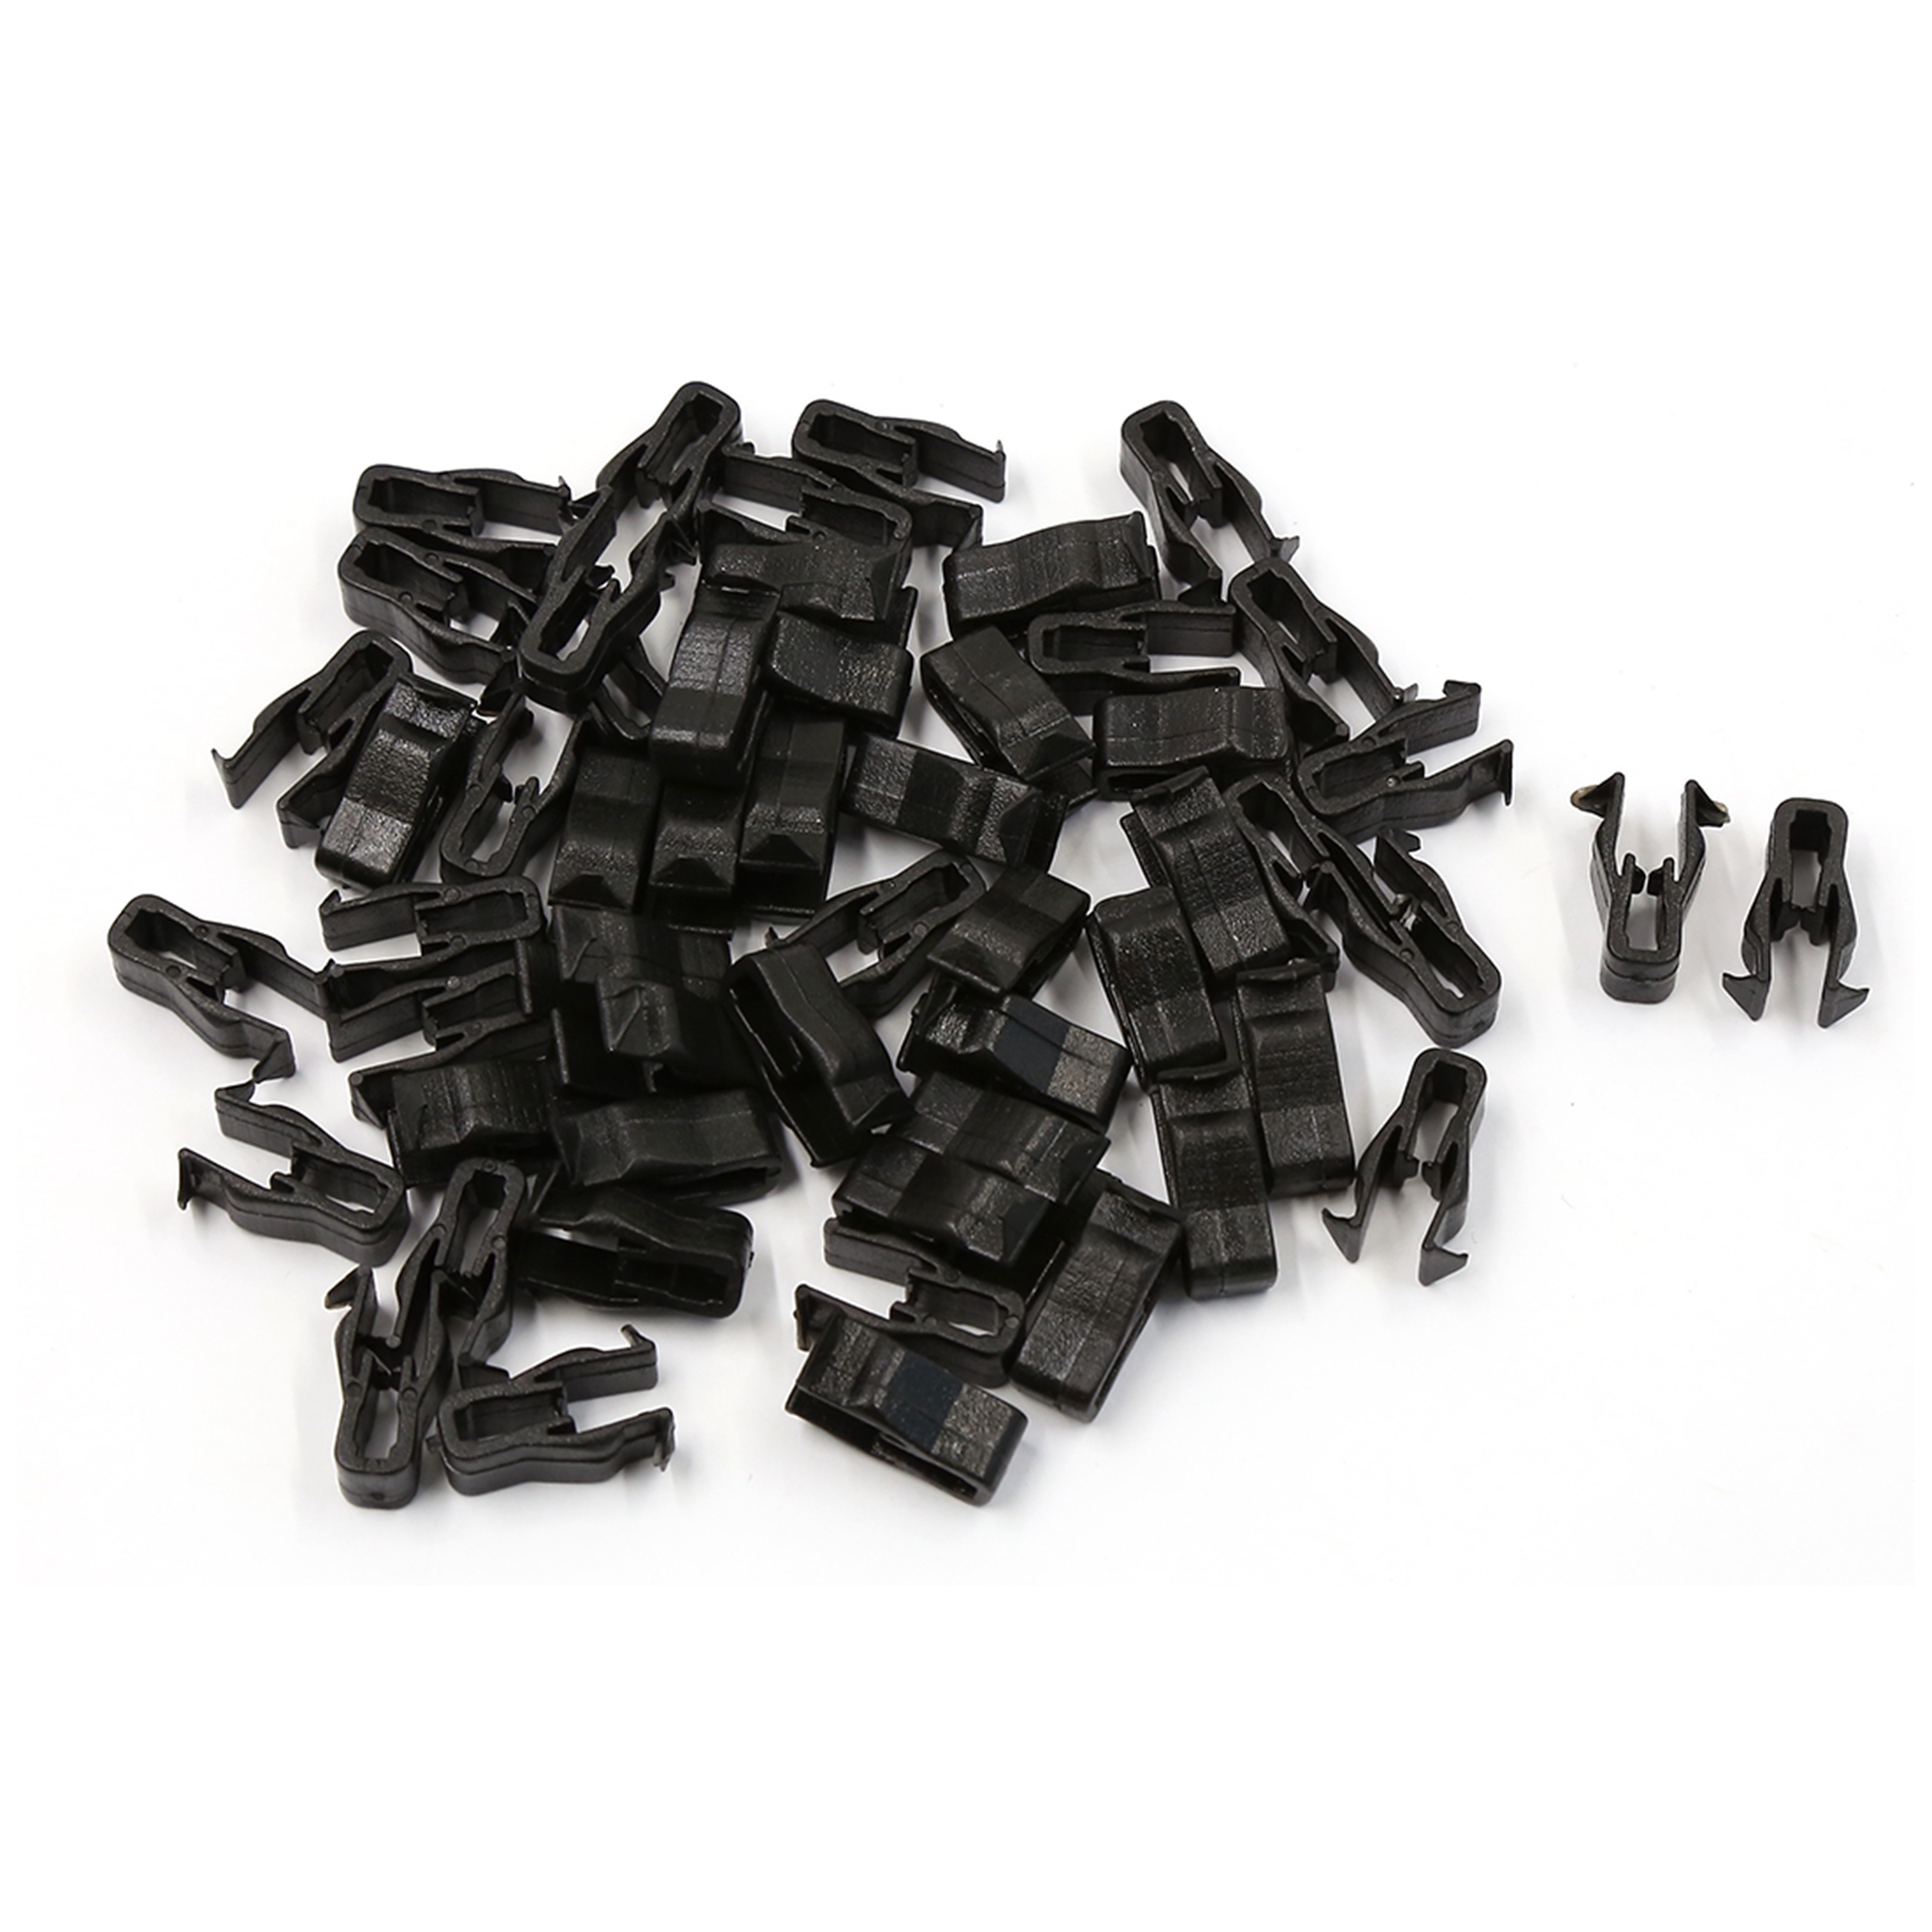 50 Pcs 6mm Hole Car Instrument Panel Dashboard Plastic Rivet Moulding Clip Black